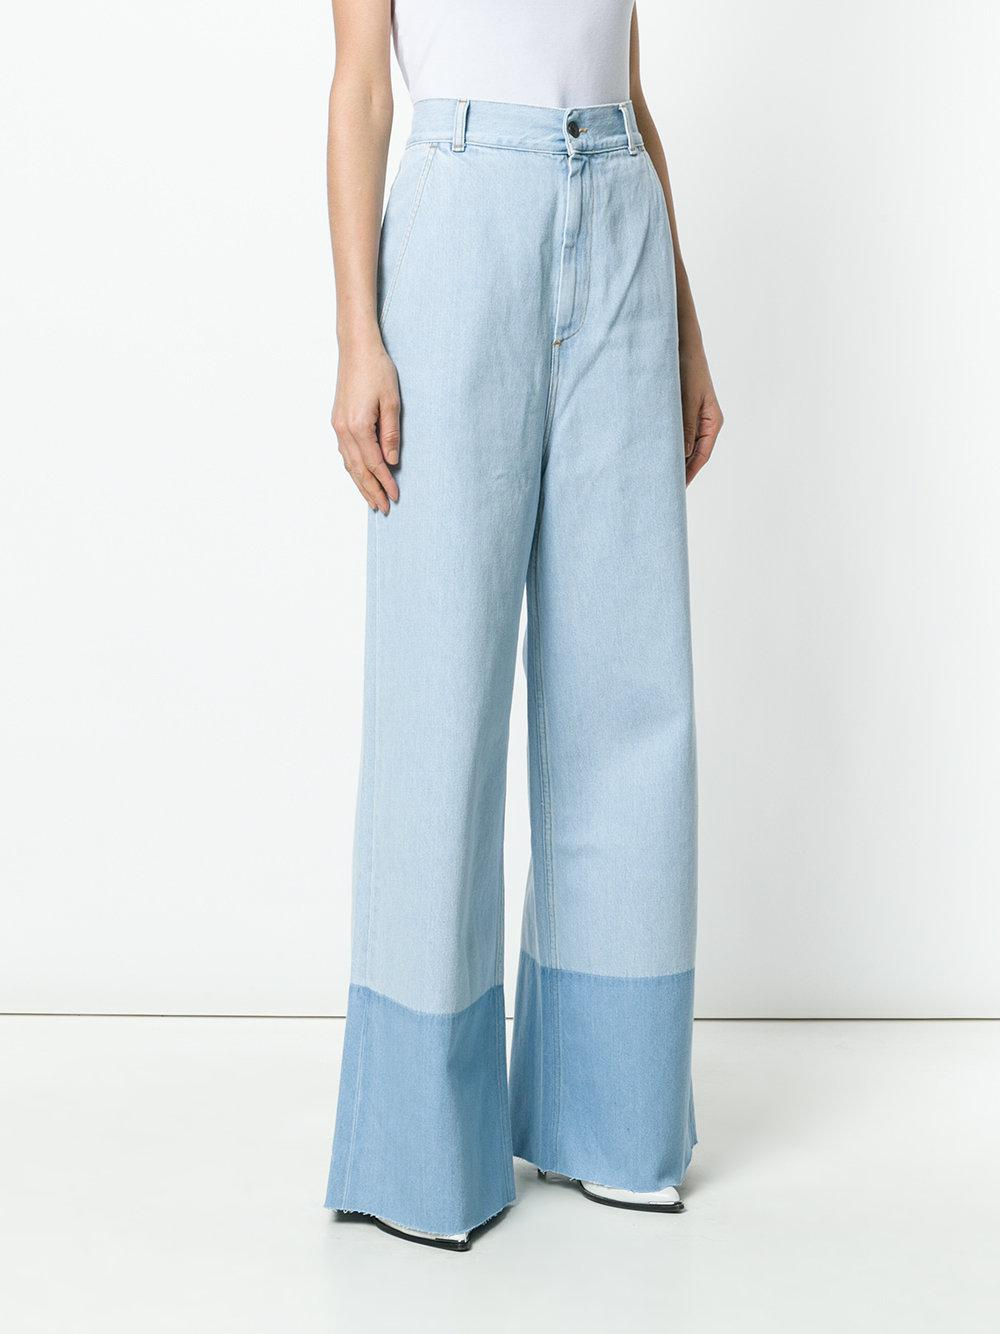 Ports 1961 long straight leg jeans Outlet Free Shipping IVisfuIyup